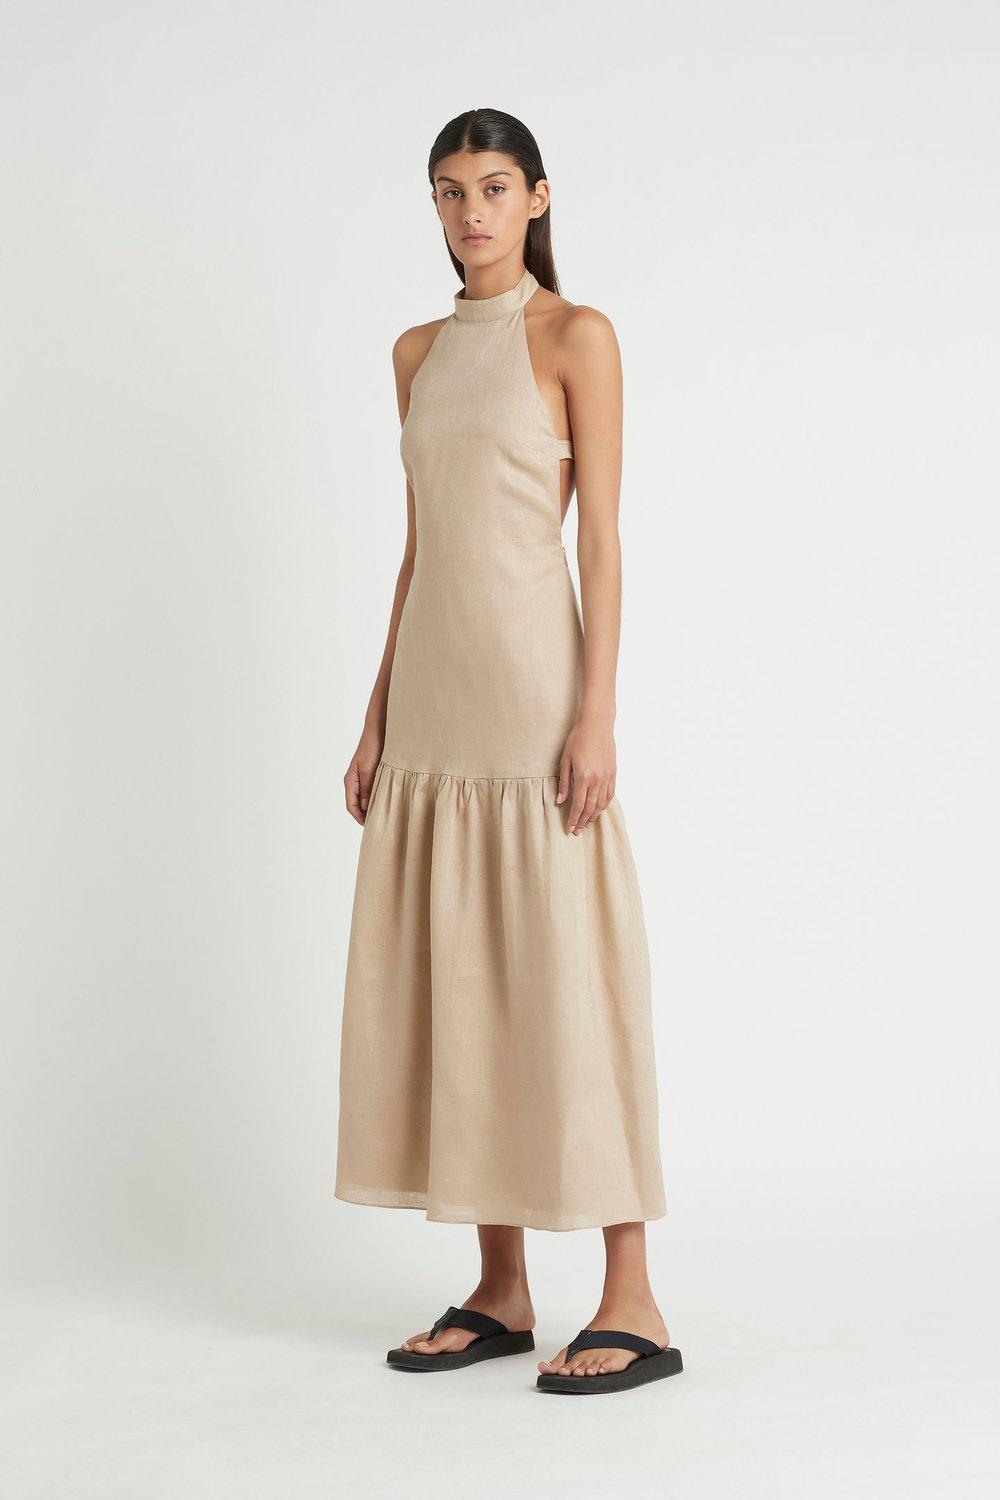 Blanche Halter Dress / Bone | SIR | Mad About The Boy